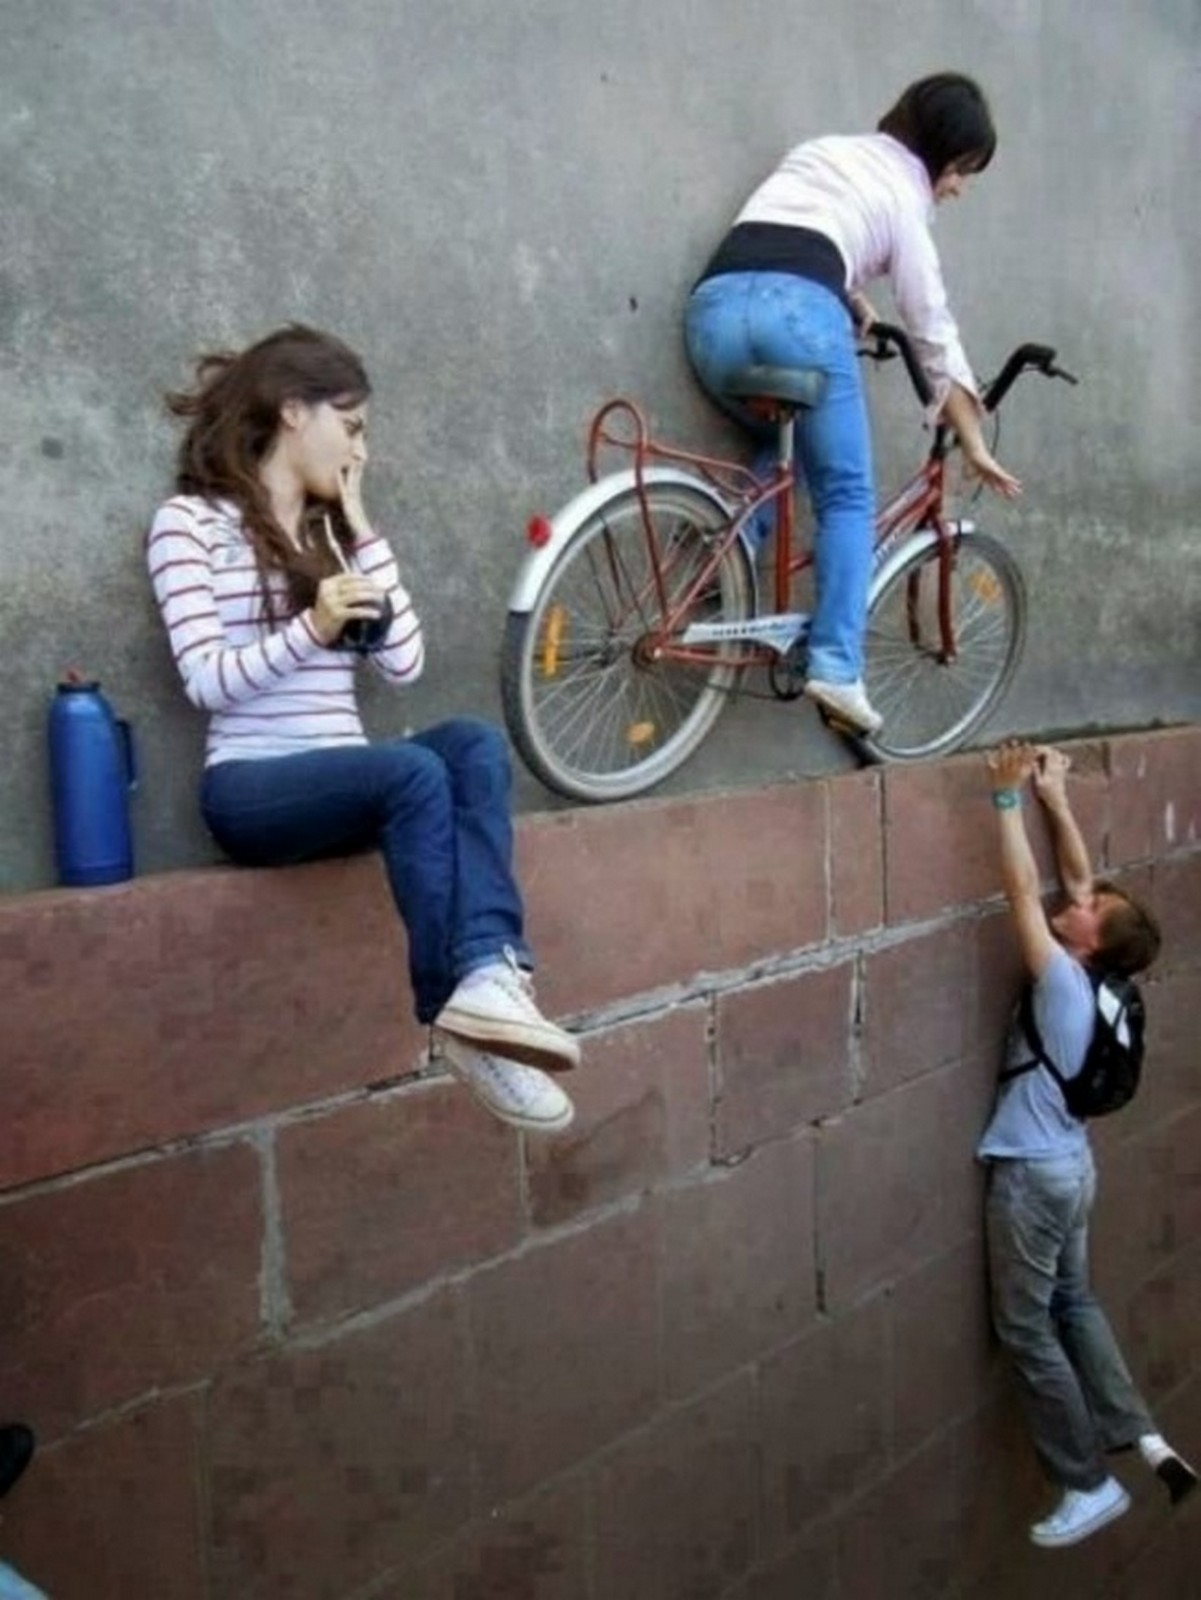 18 Perfectly Timed Photos - Who needs gravity?